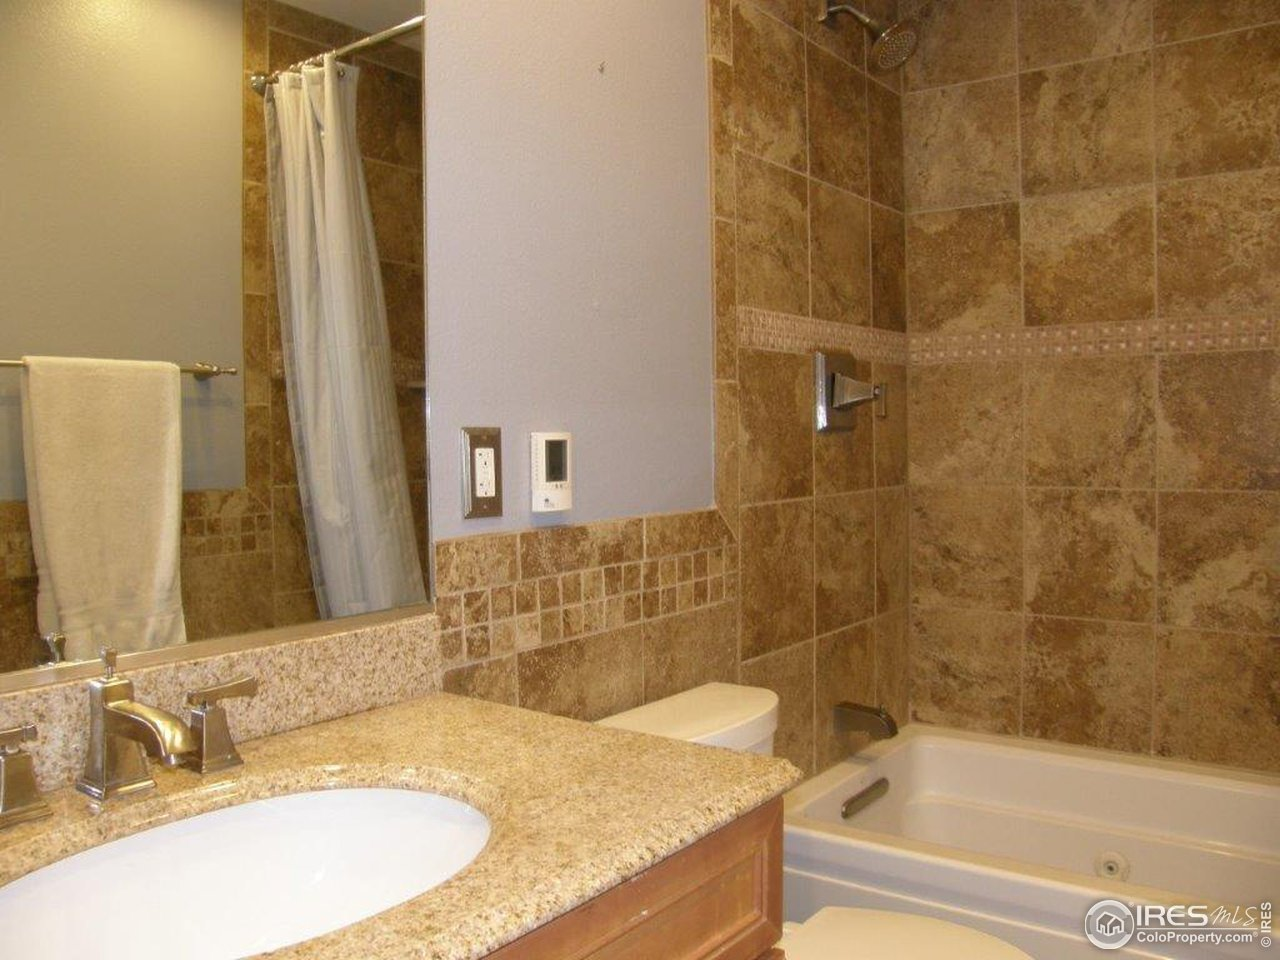 2nd floor hall bath w/ Jacuzzi tub